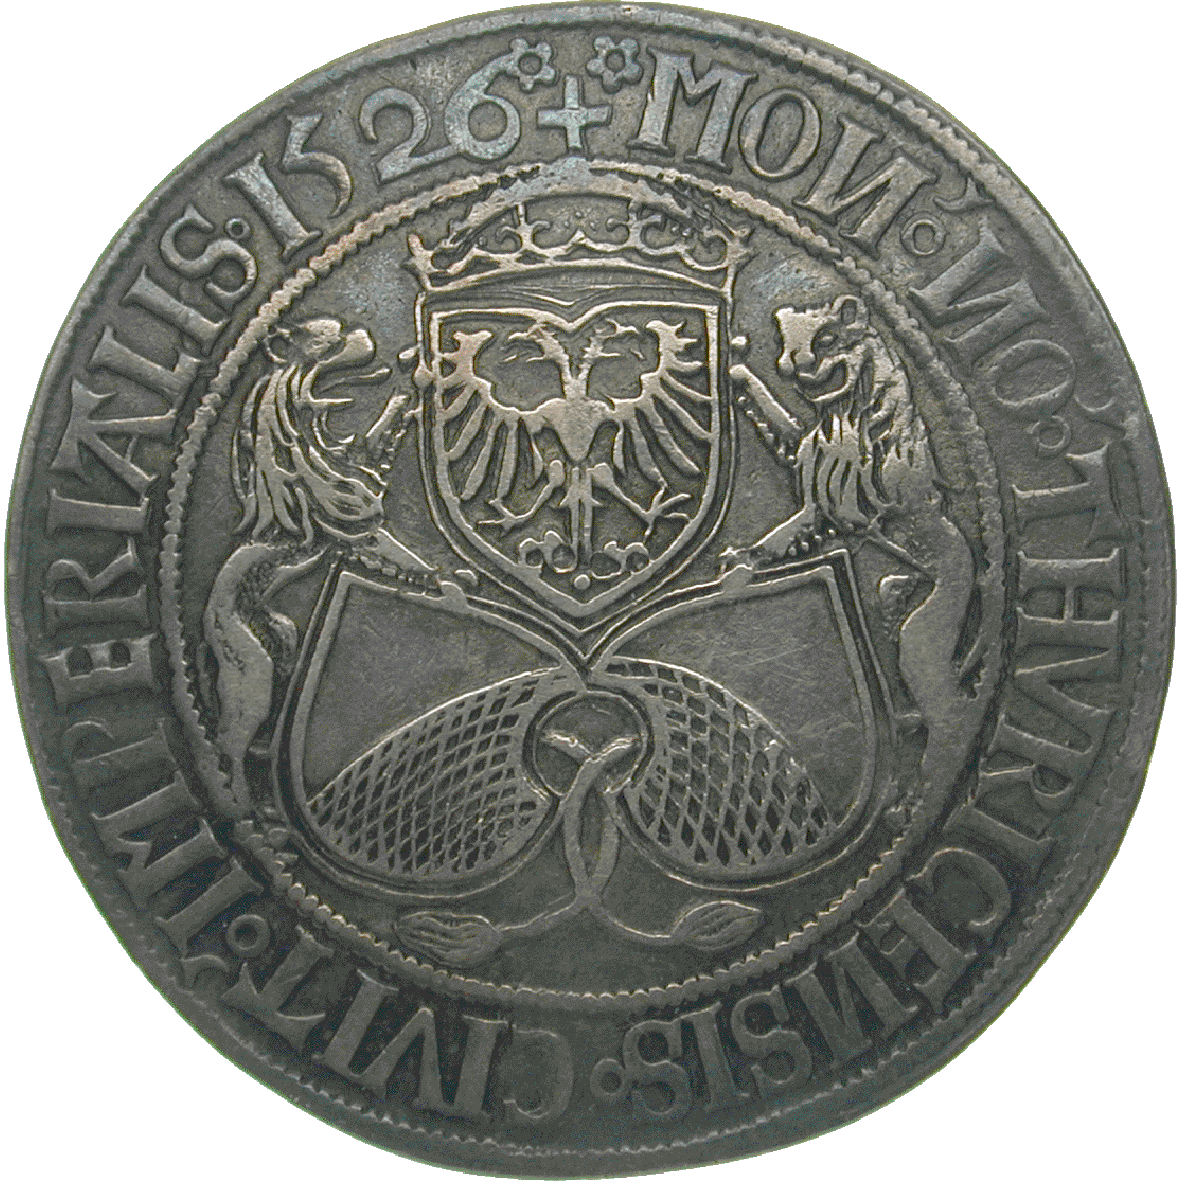 Holy Roman Empire, City of Zurich, Guldiner 1526 (obverse)